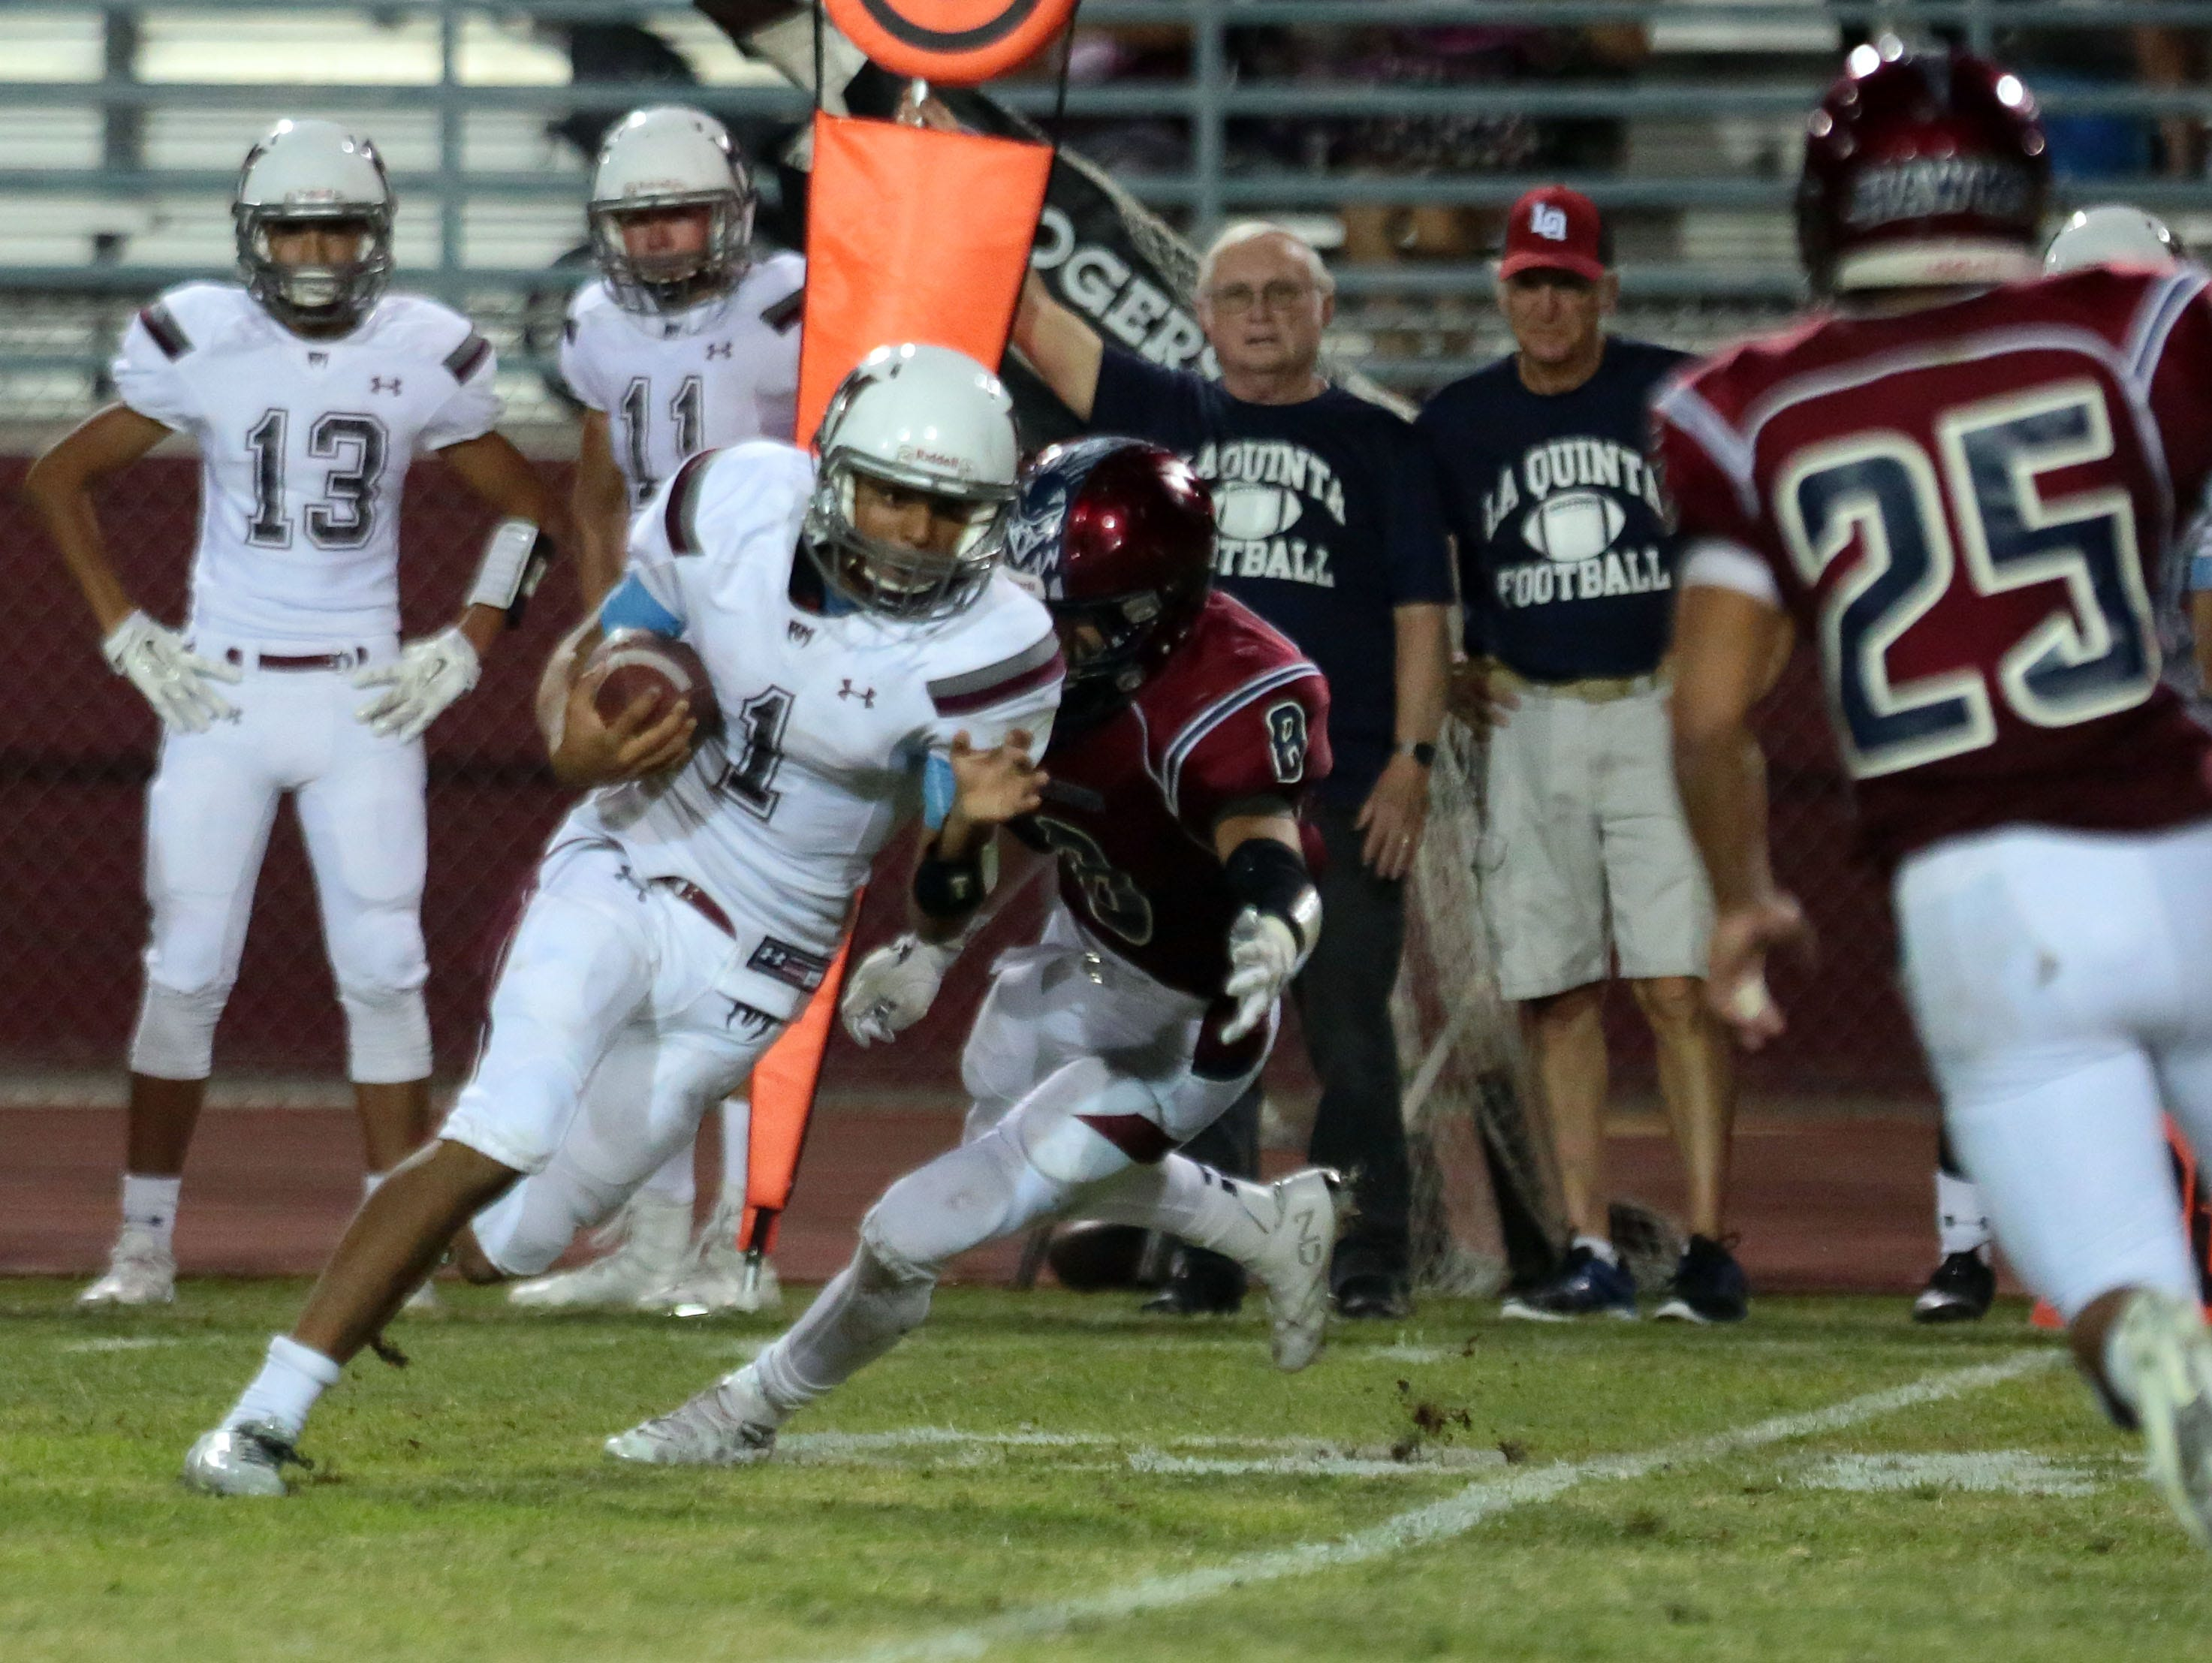 Rancho Mirage's Marques Prior starts his touchdown run against La Quinta in the second quarter on Friday, September 9, 2016 in La Quinta.